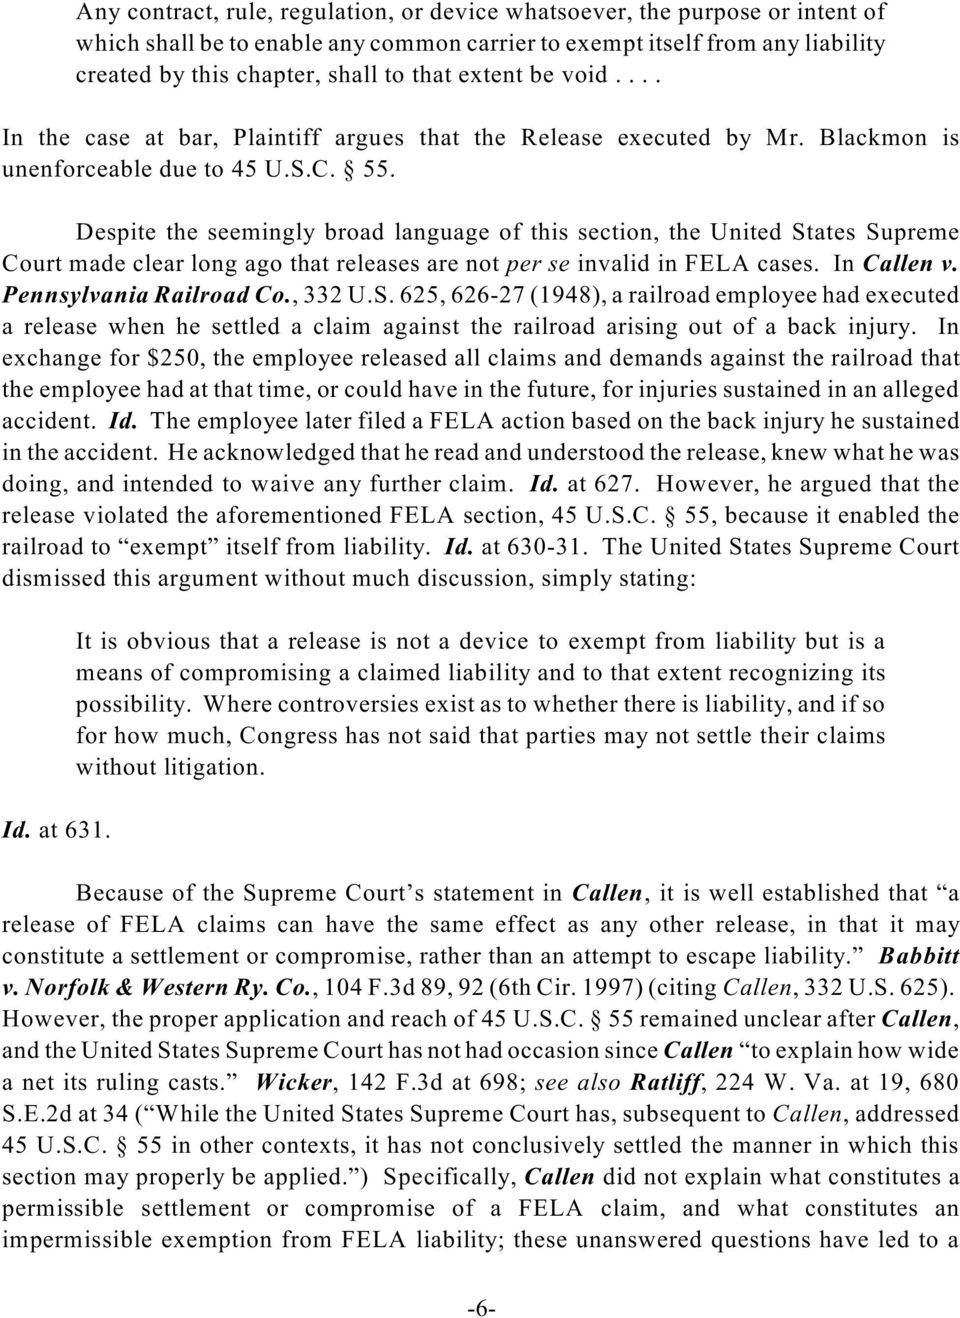 Despite the seemingly broad language of this section, the United States Supreme Court made clear long ago that releases are not per se invalid in FELA cases. In Callen v. Pennsylvania Railroad Co.